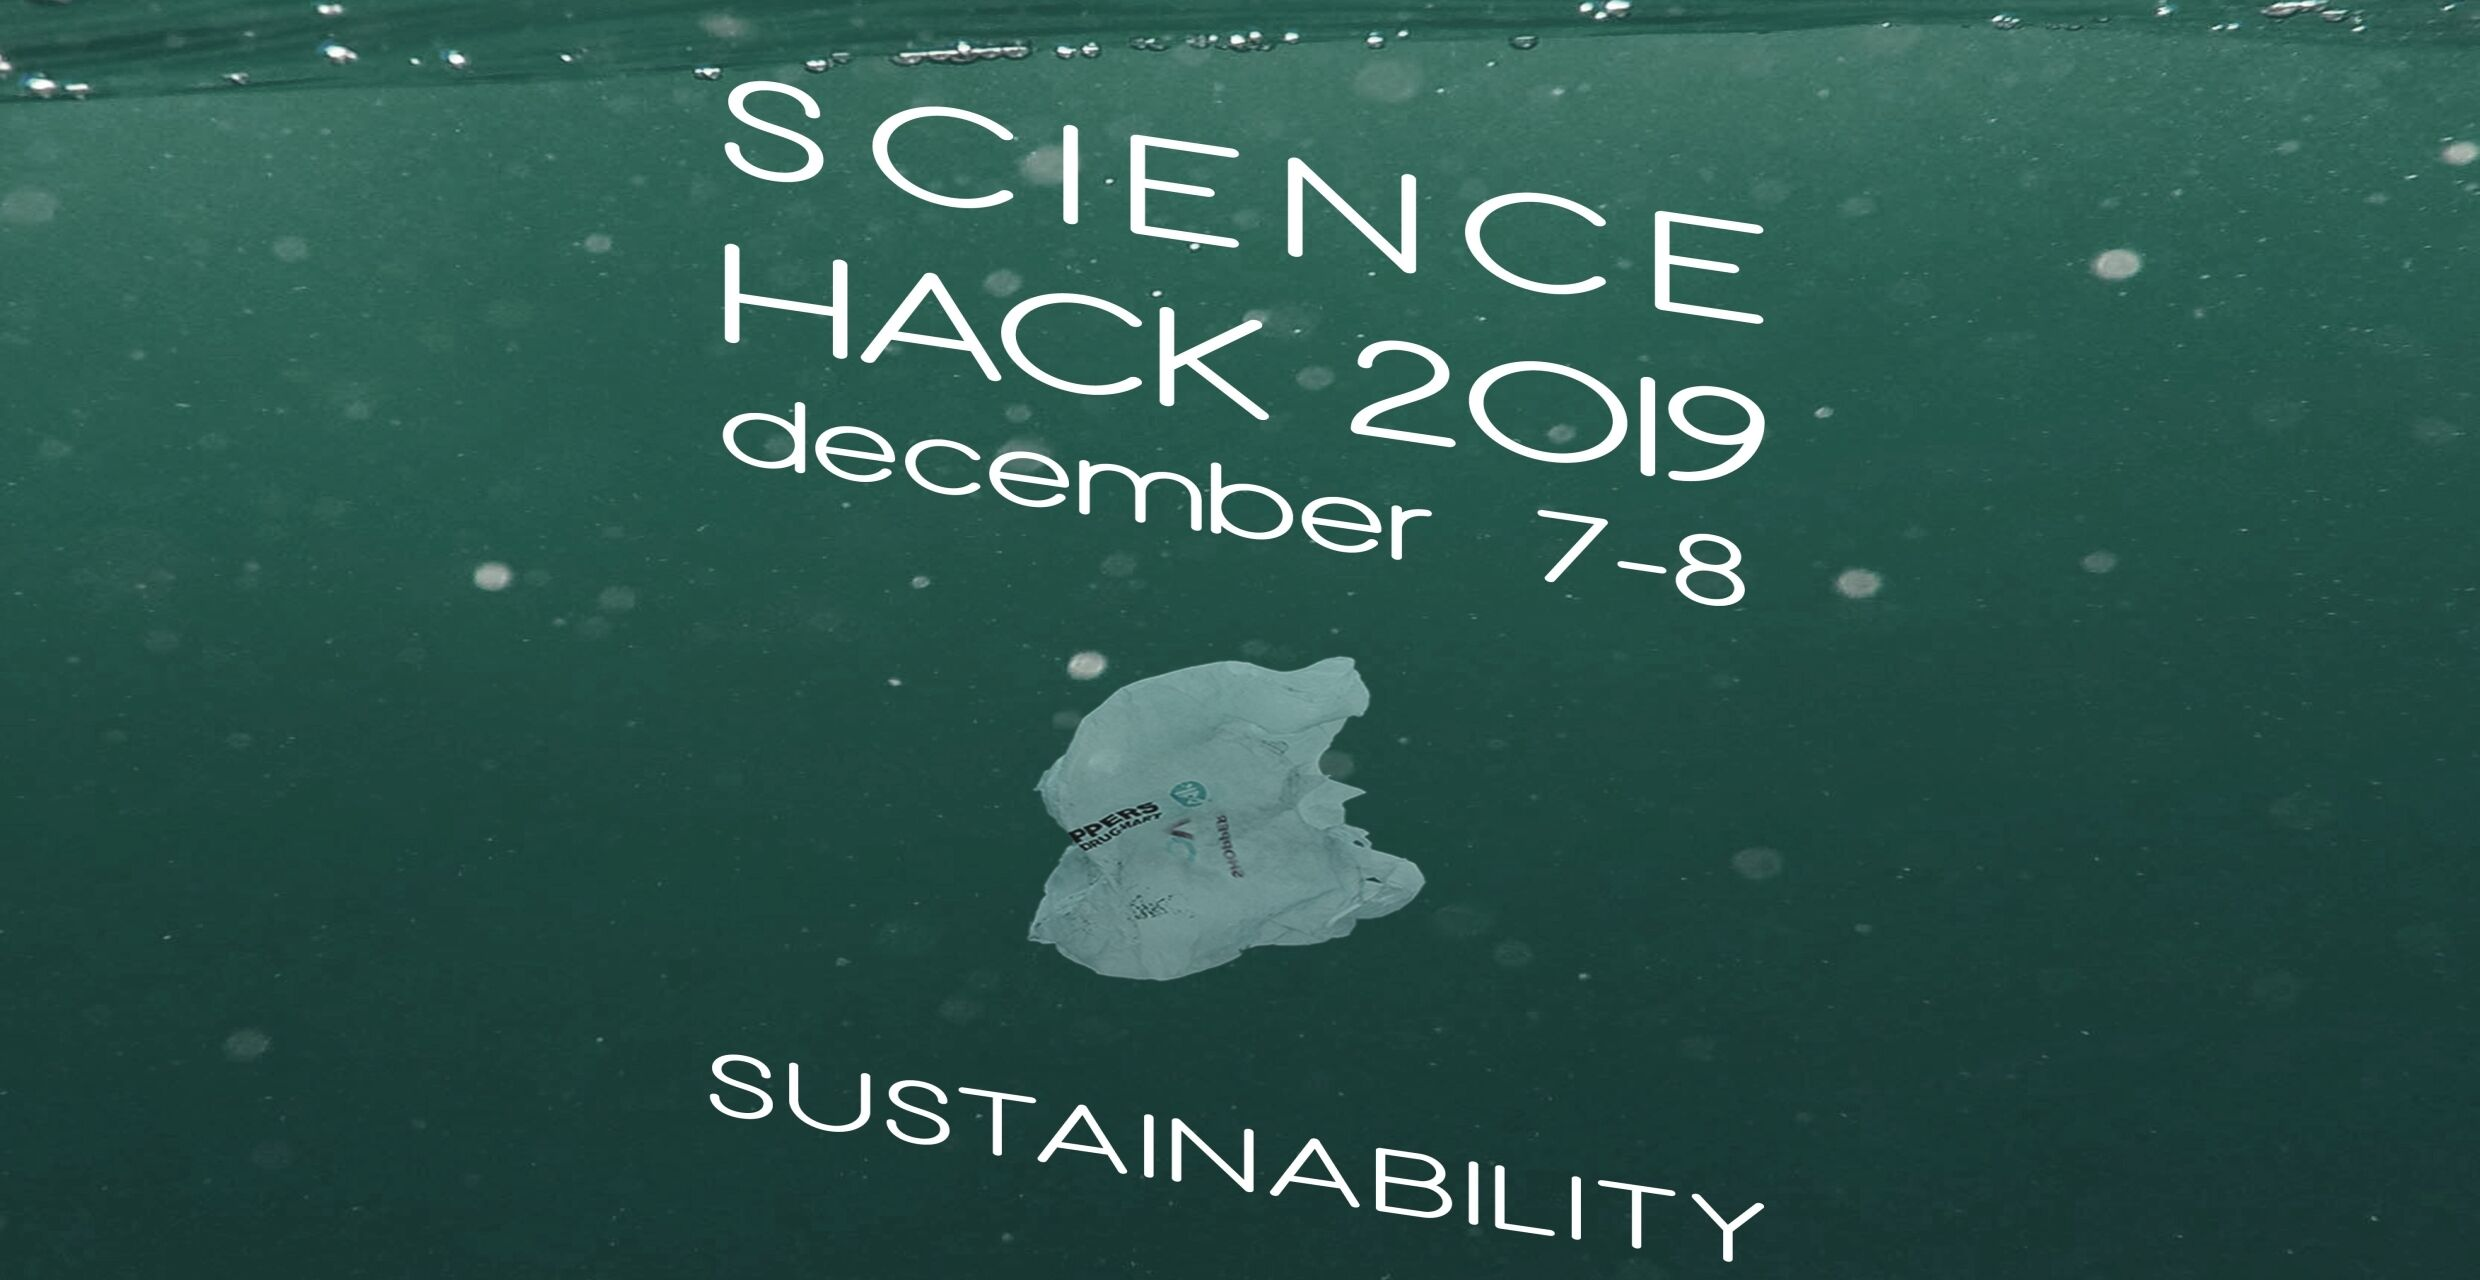 Science Hack 2019 about sustainability: December 7–8